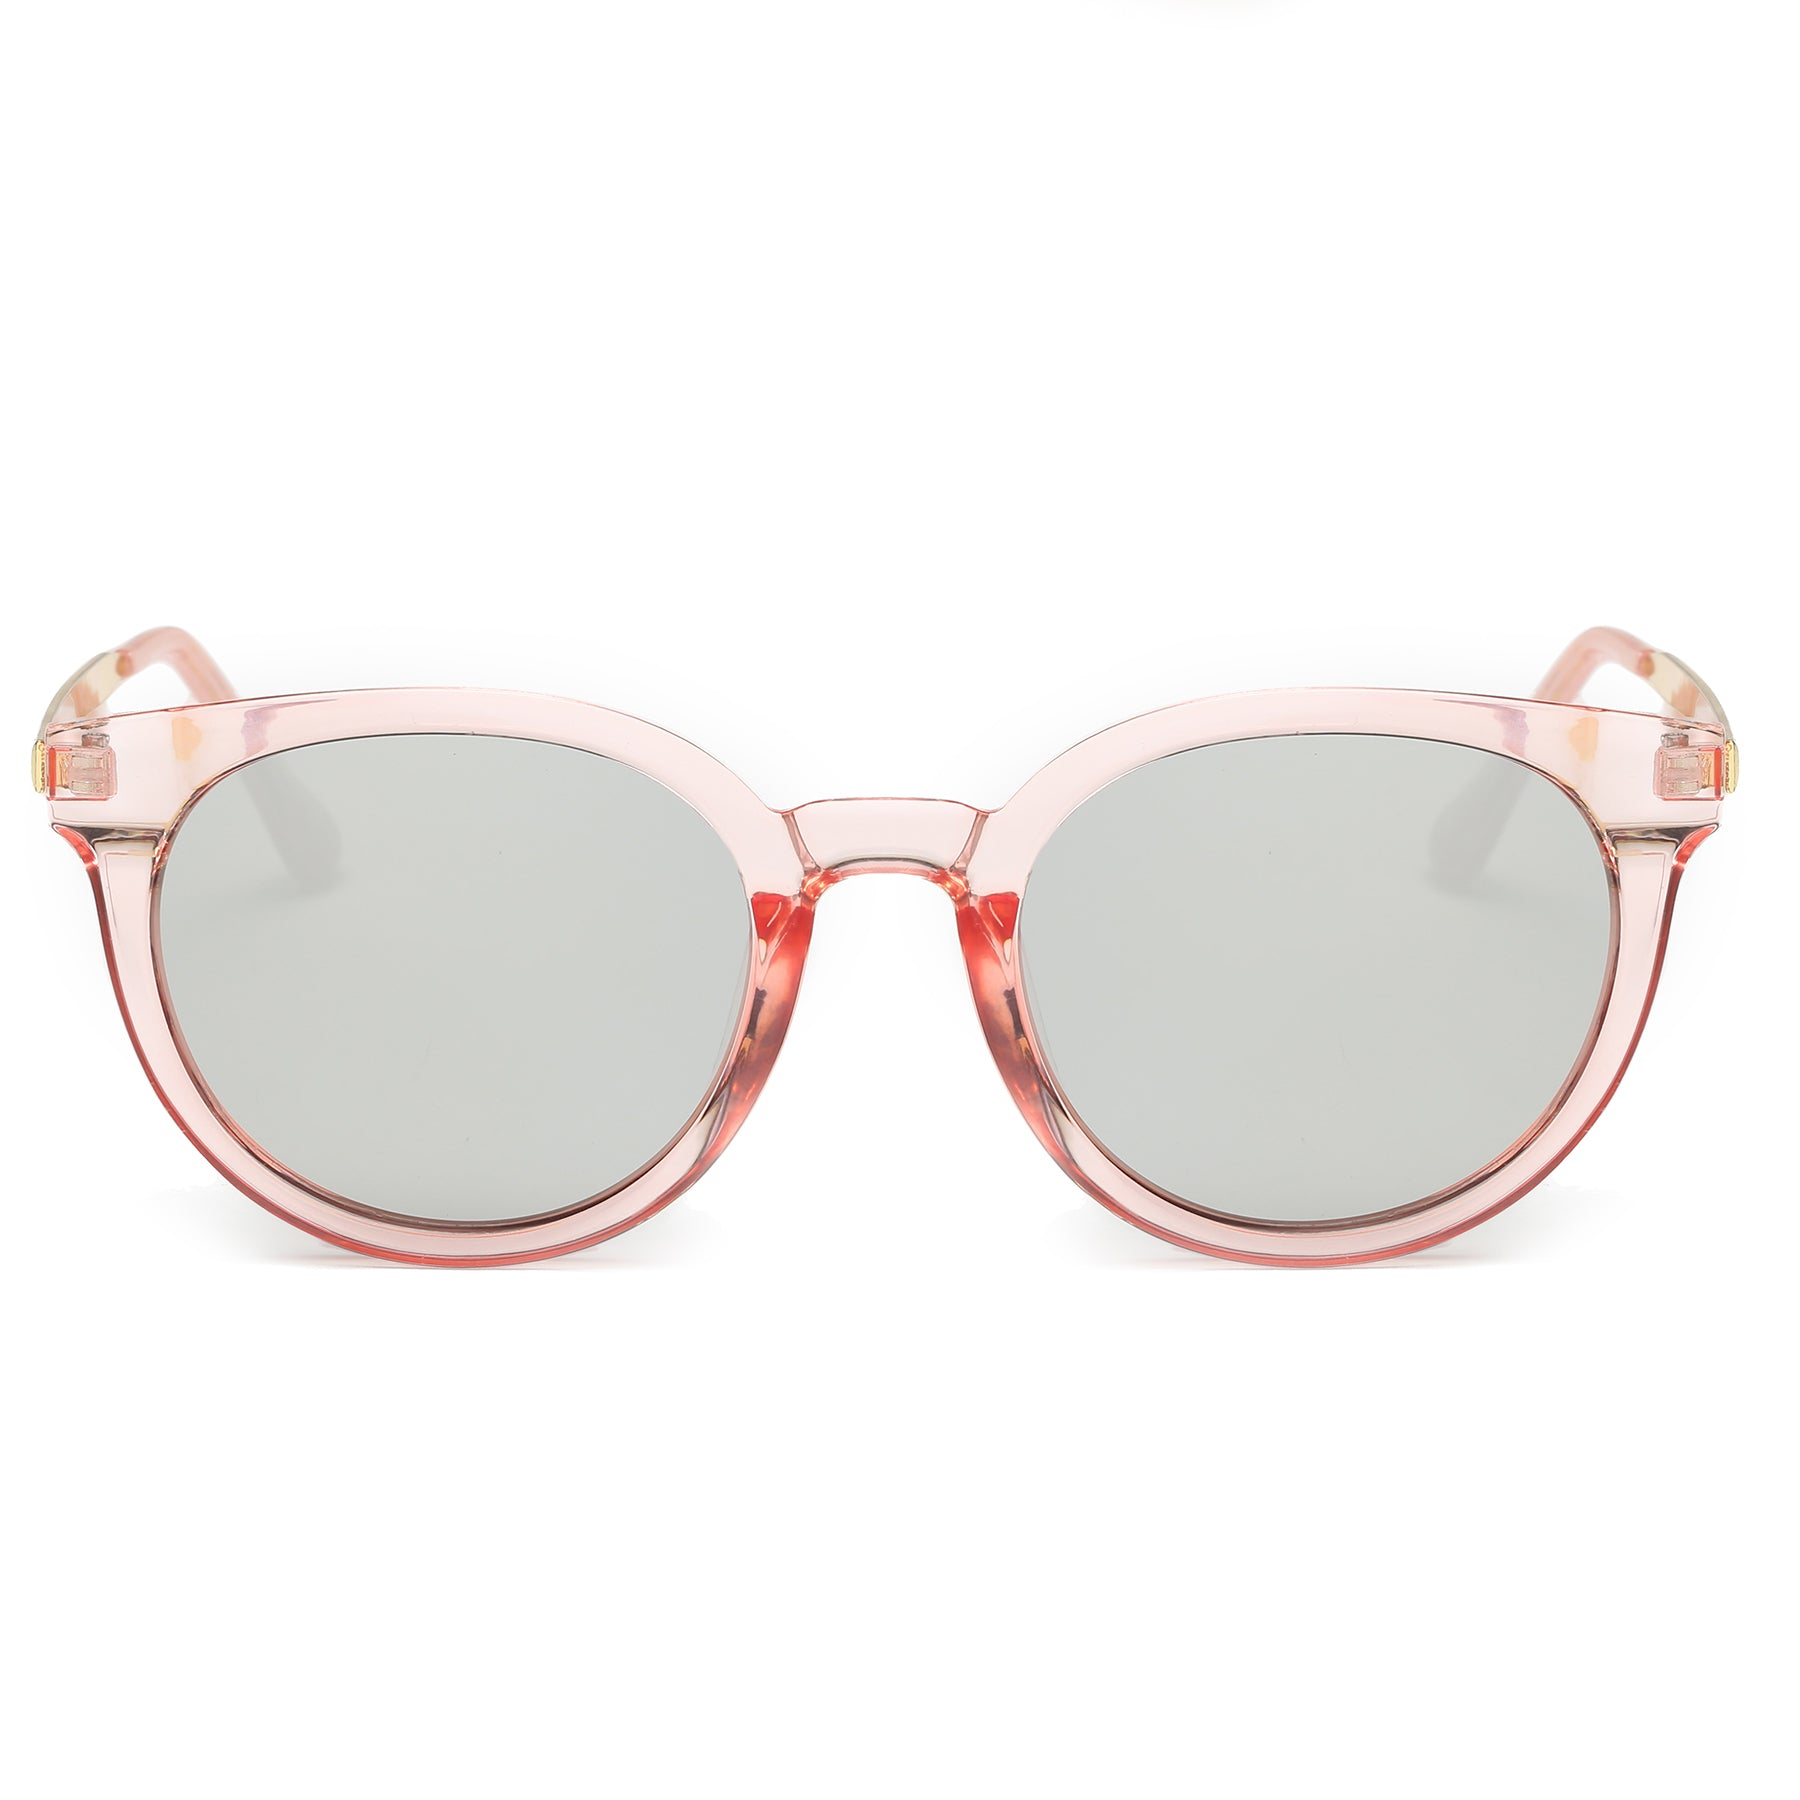 IBIZA CAT-EYE SUNGLASS CLEAR PINK